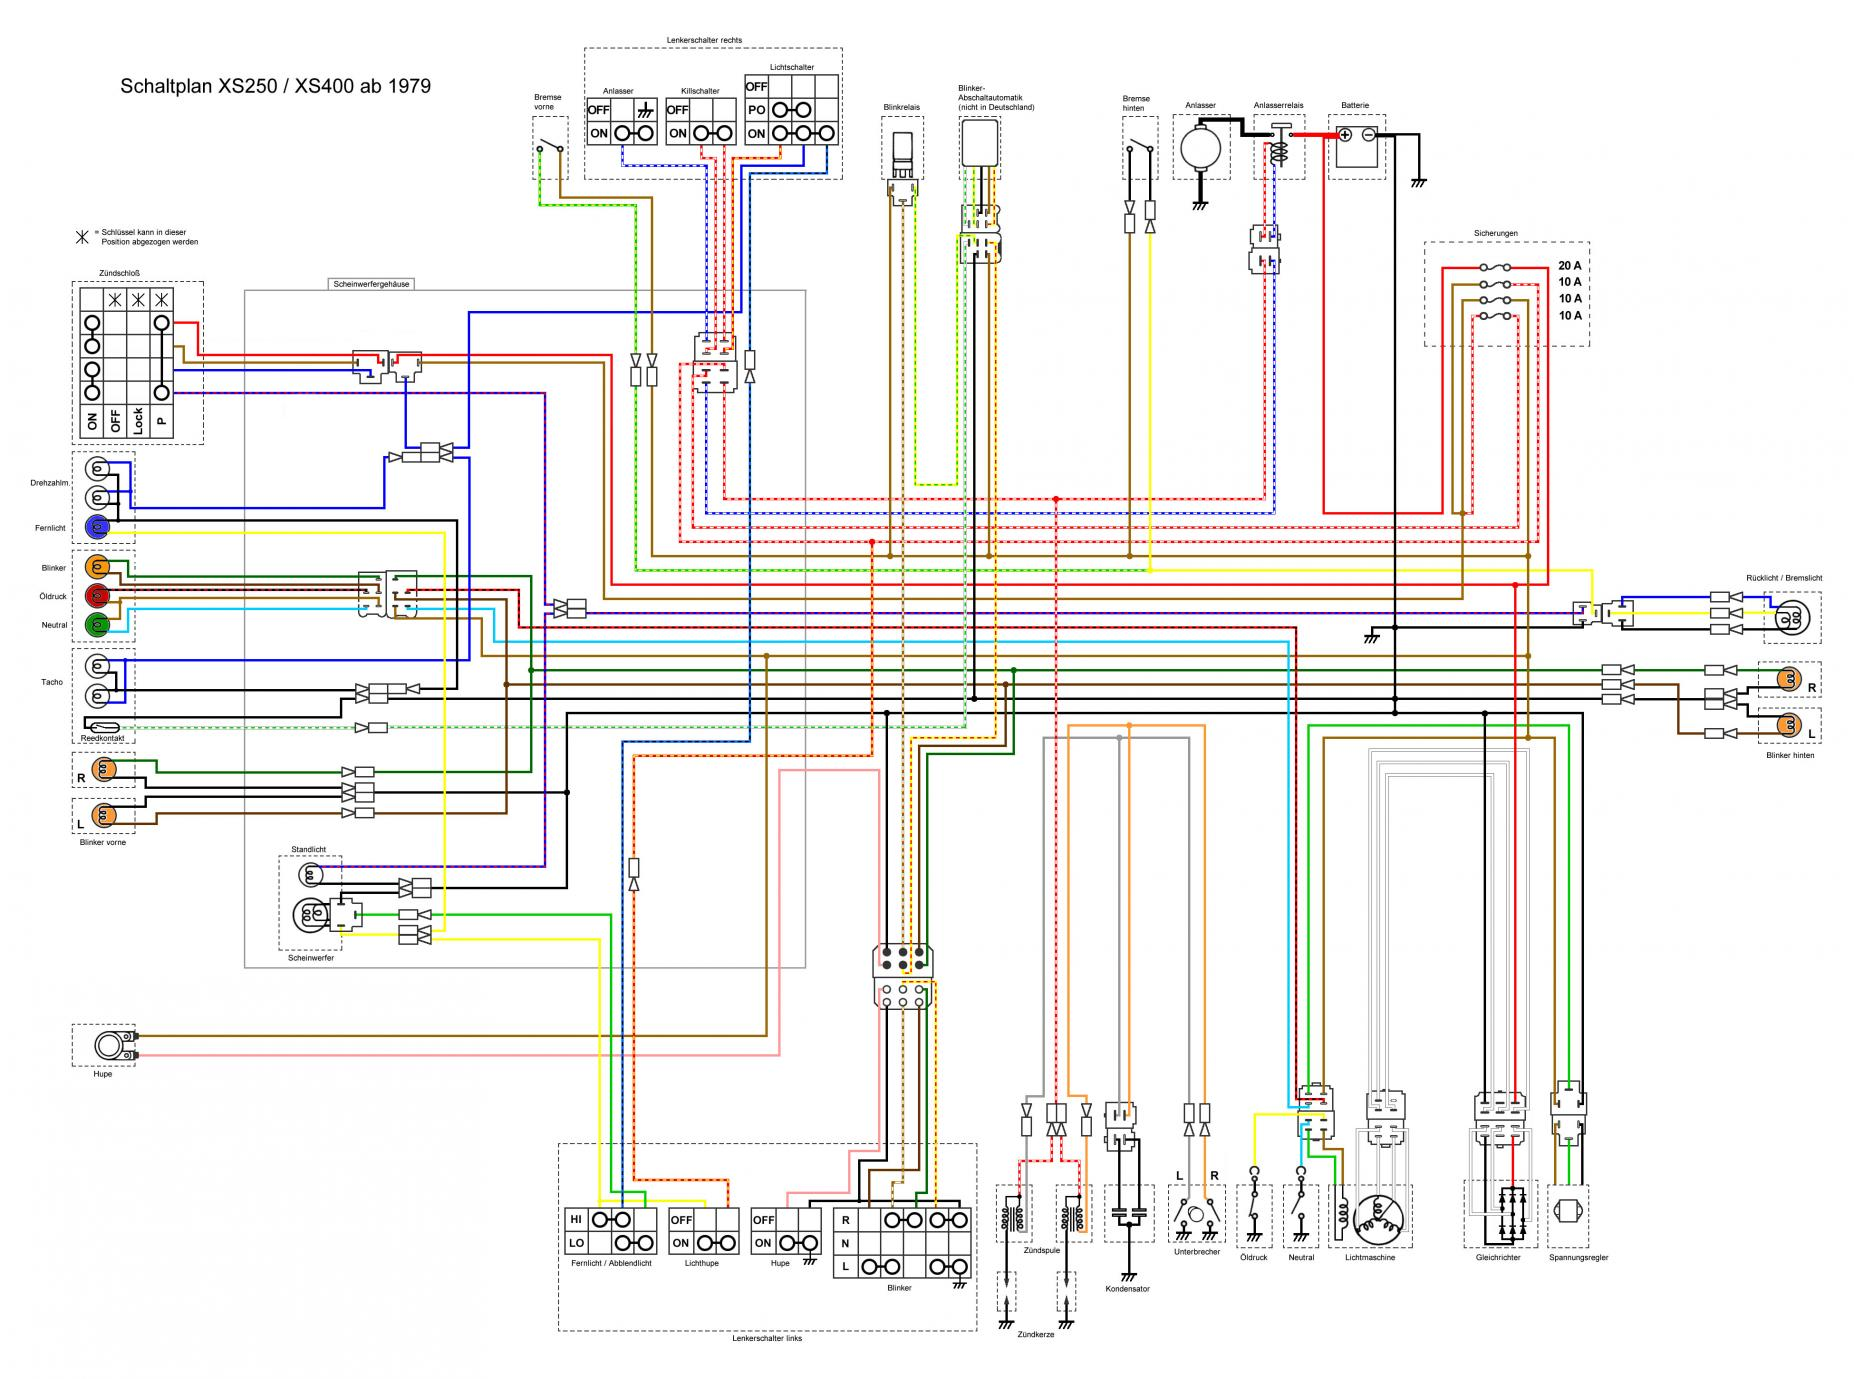 hight resolution of xs400 wiring diagram